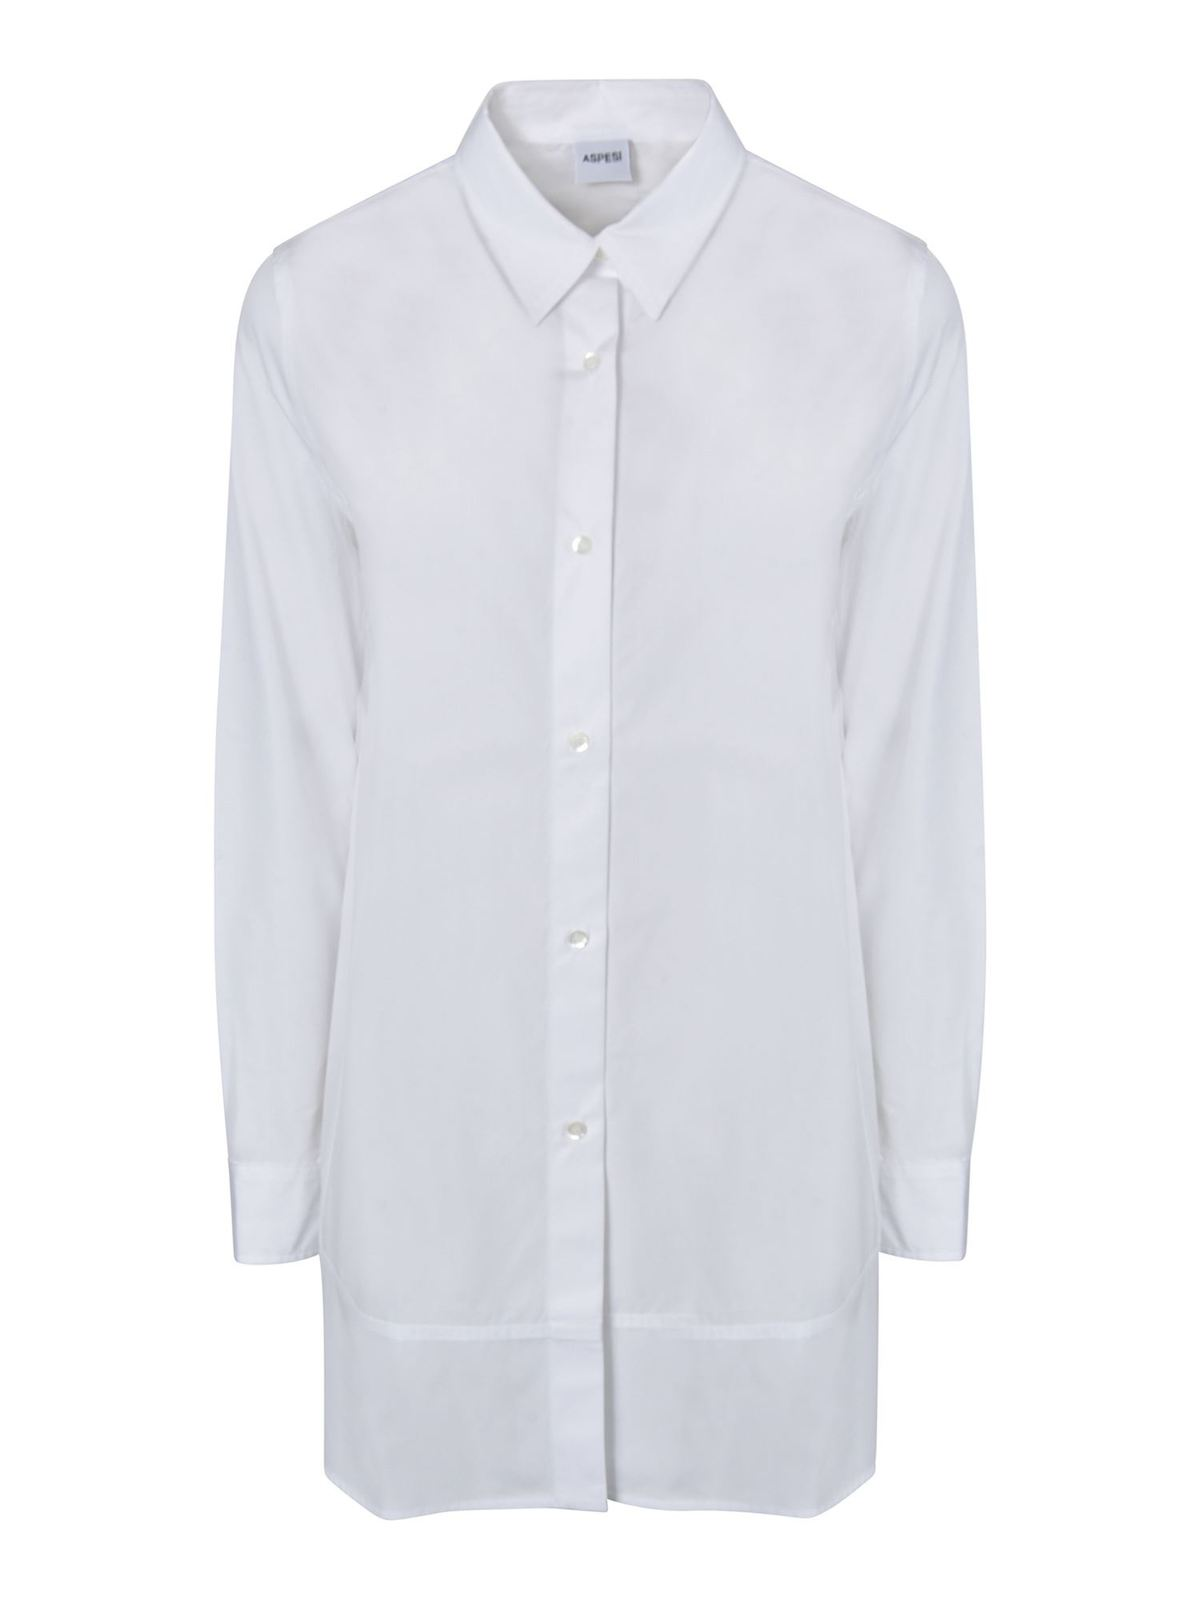 ASPESI H720 SHIRT IN WHITE